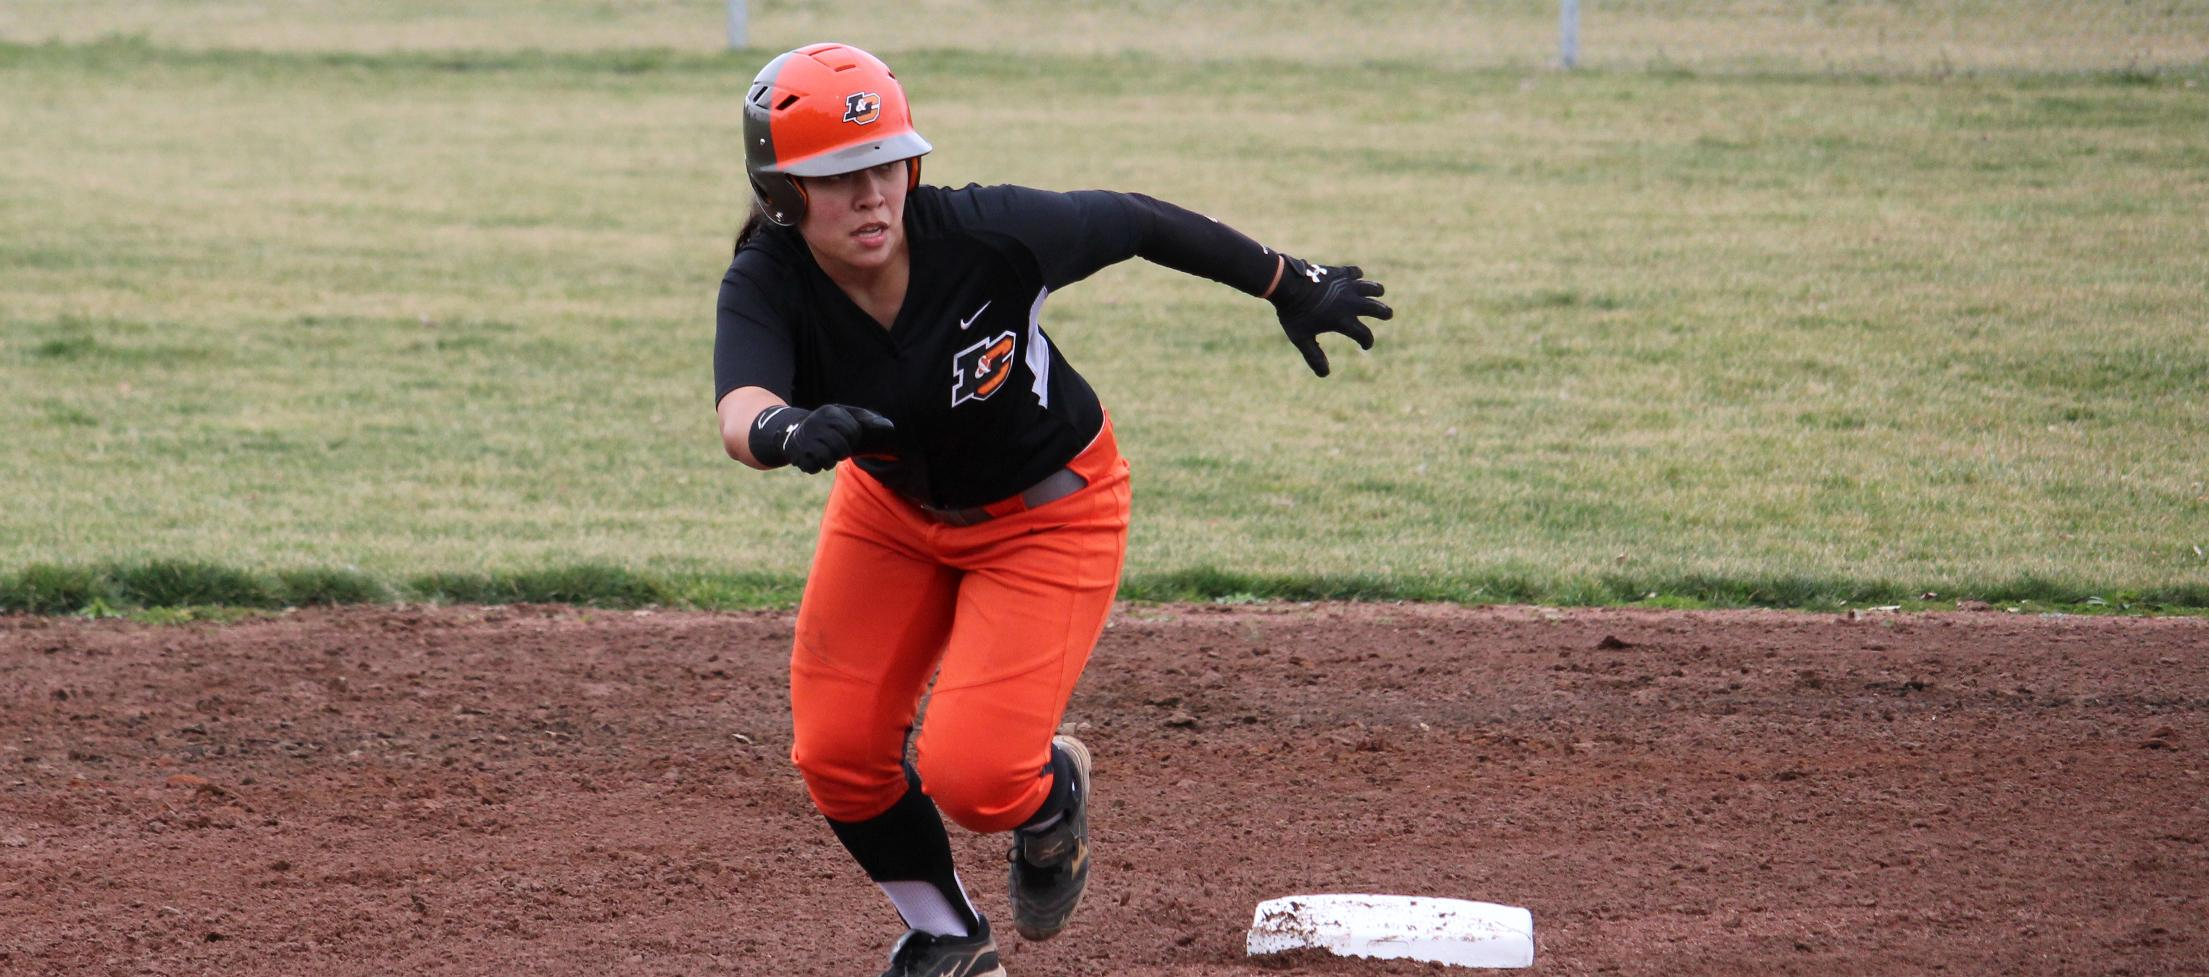 Pios put up 46 runs in doubleheader sweep